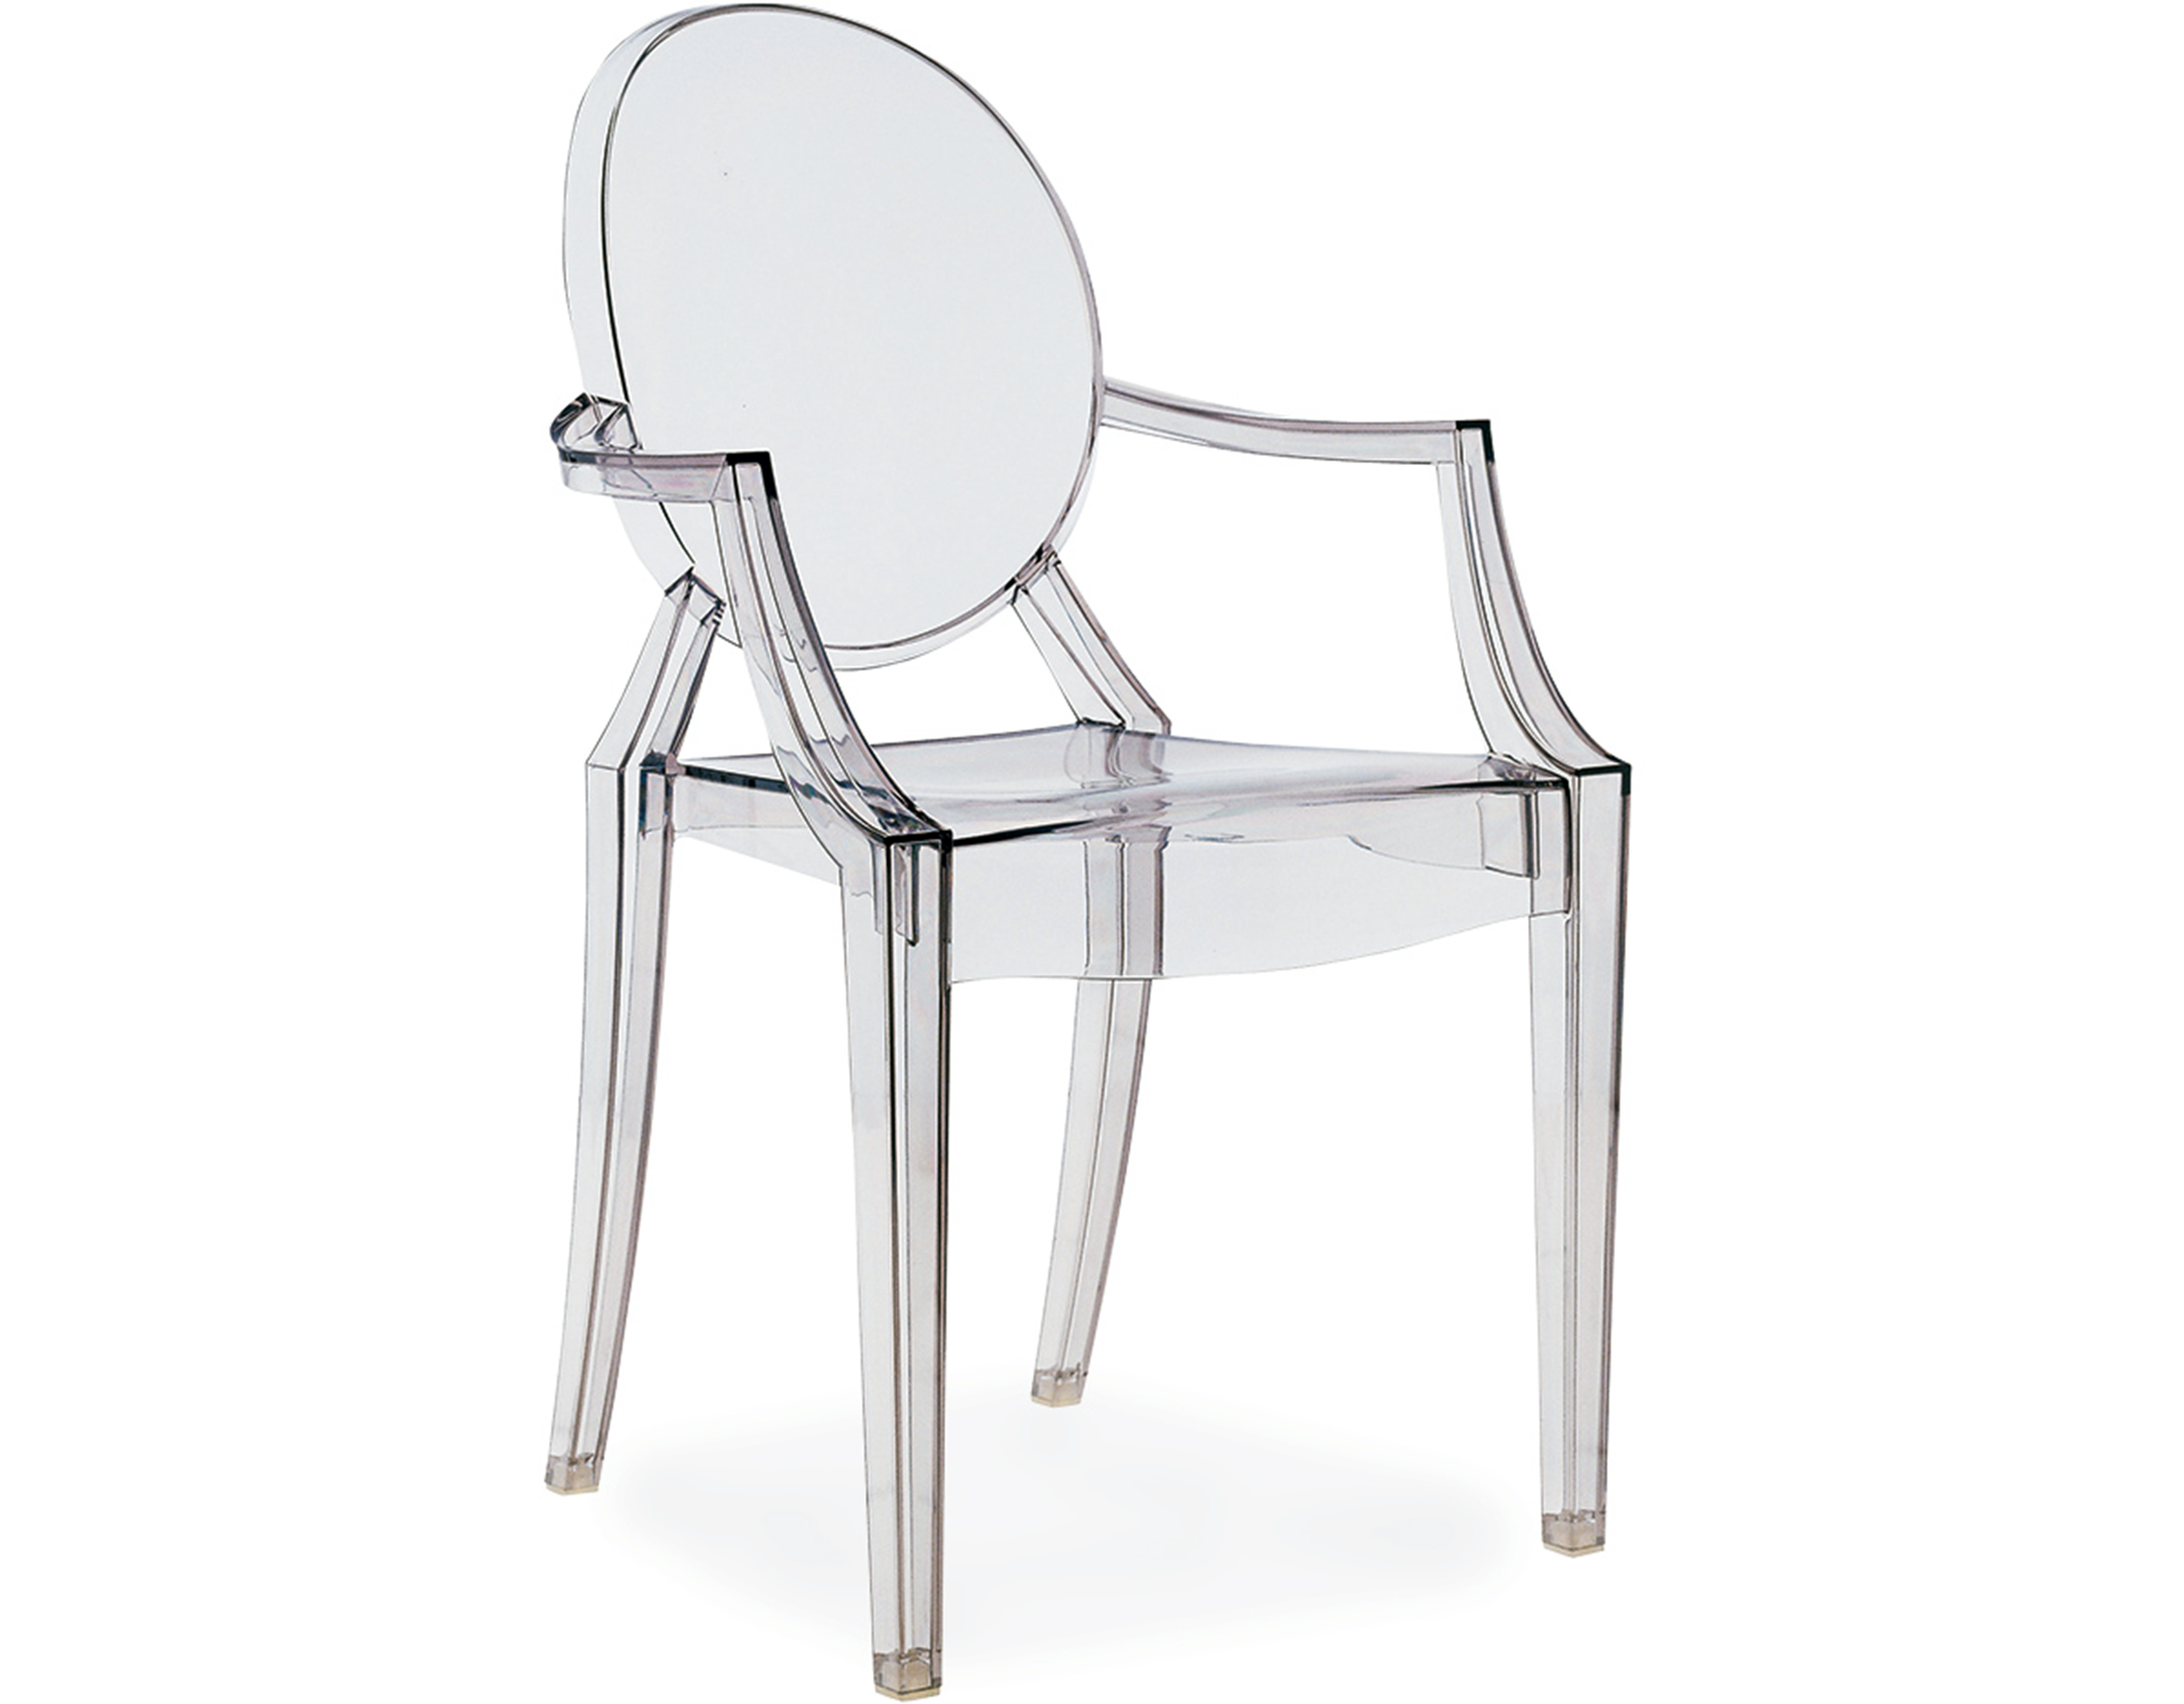 Designapplause louis ghost chair philippe starck for Chaises transparentes ikea